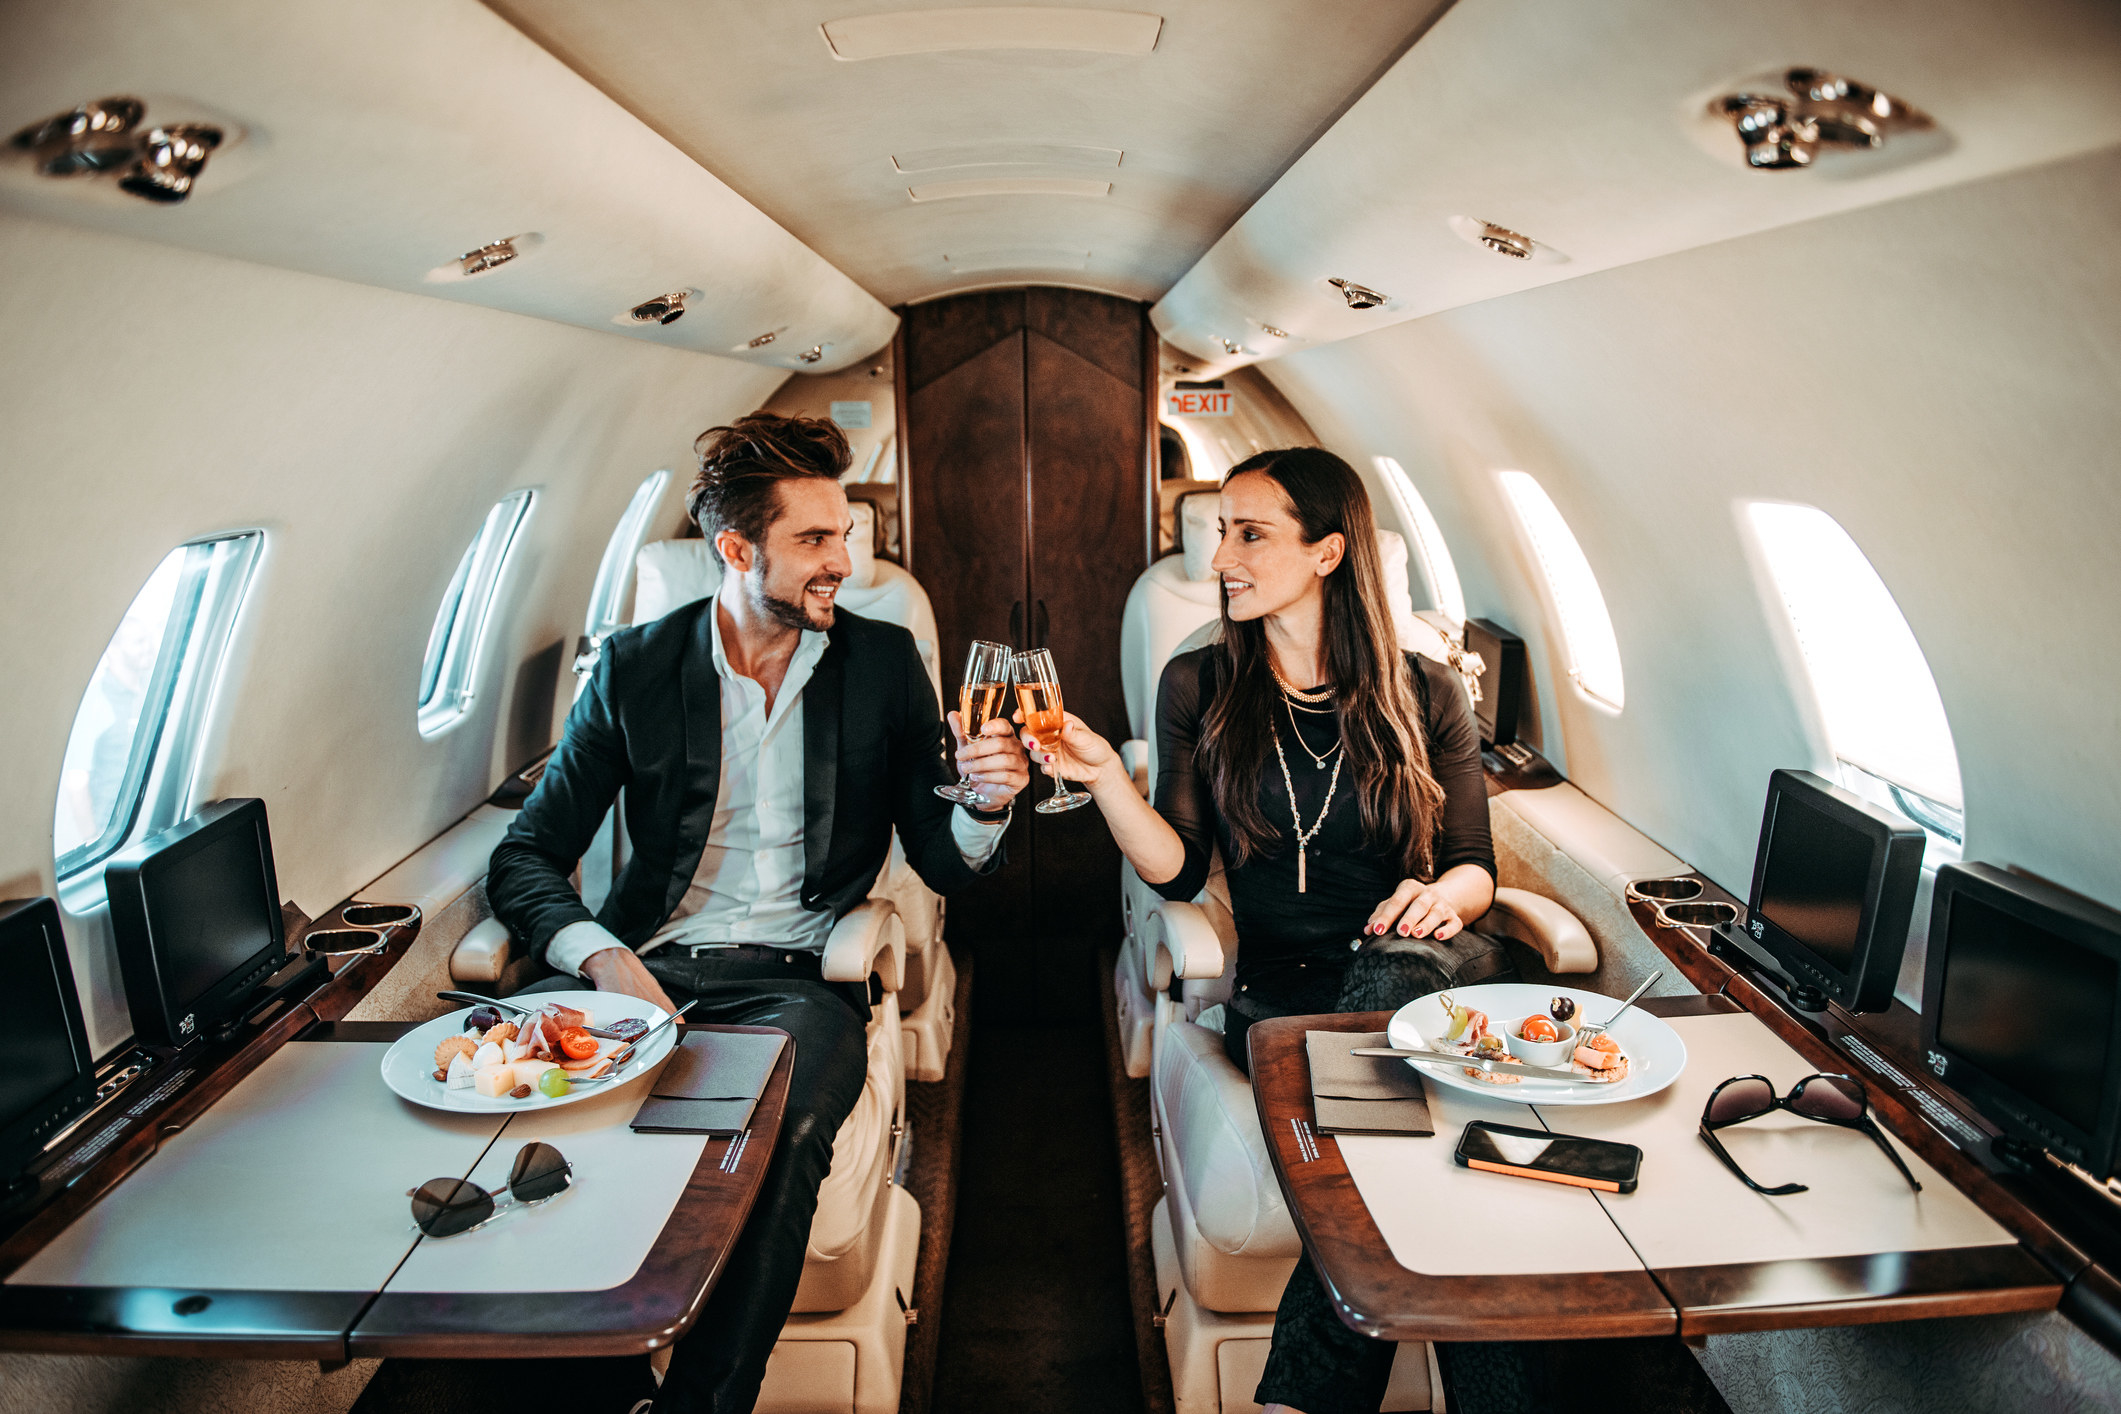 Rich couple making a toast with champagne glasses while eating canapés aboard a private jet